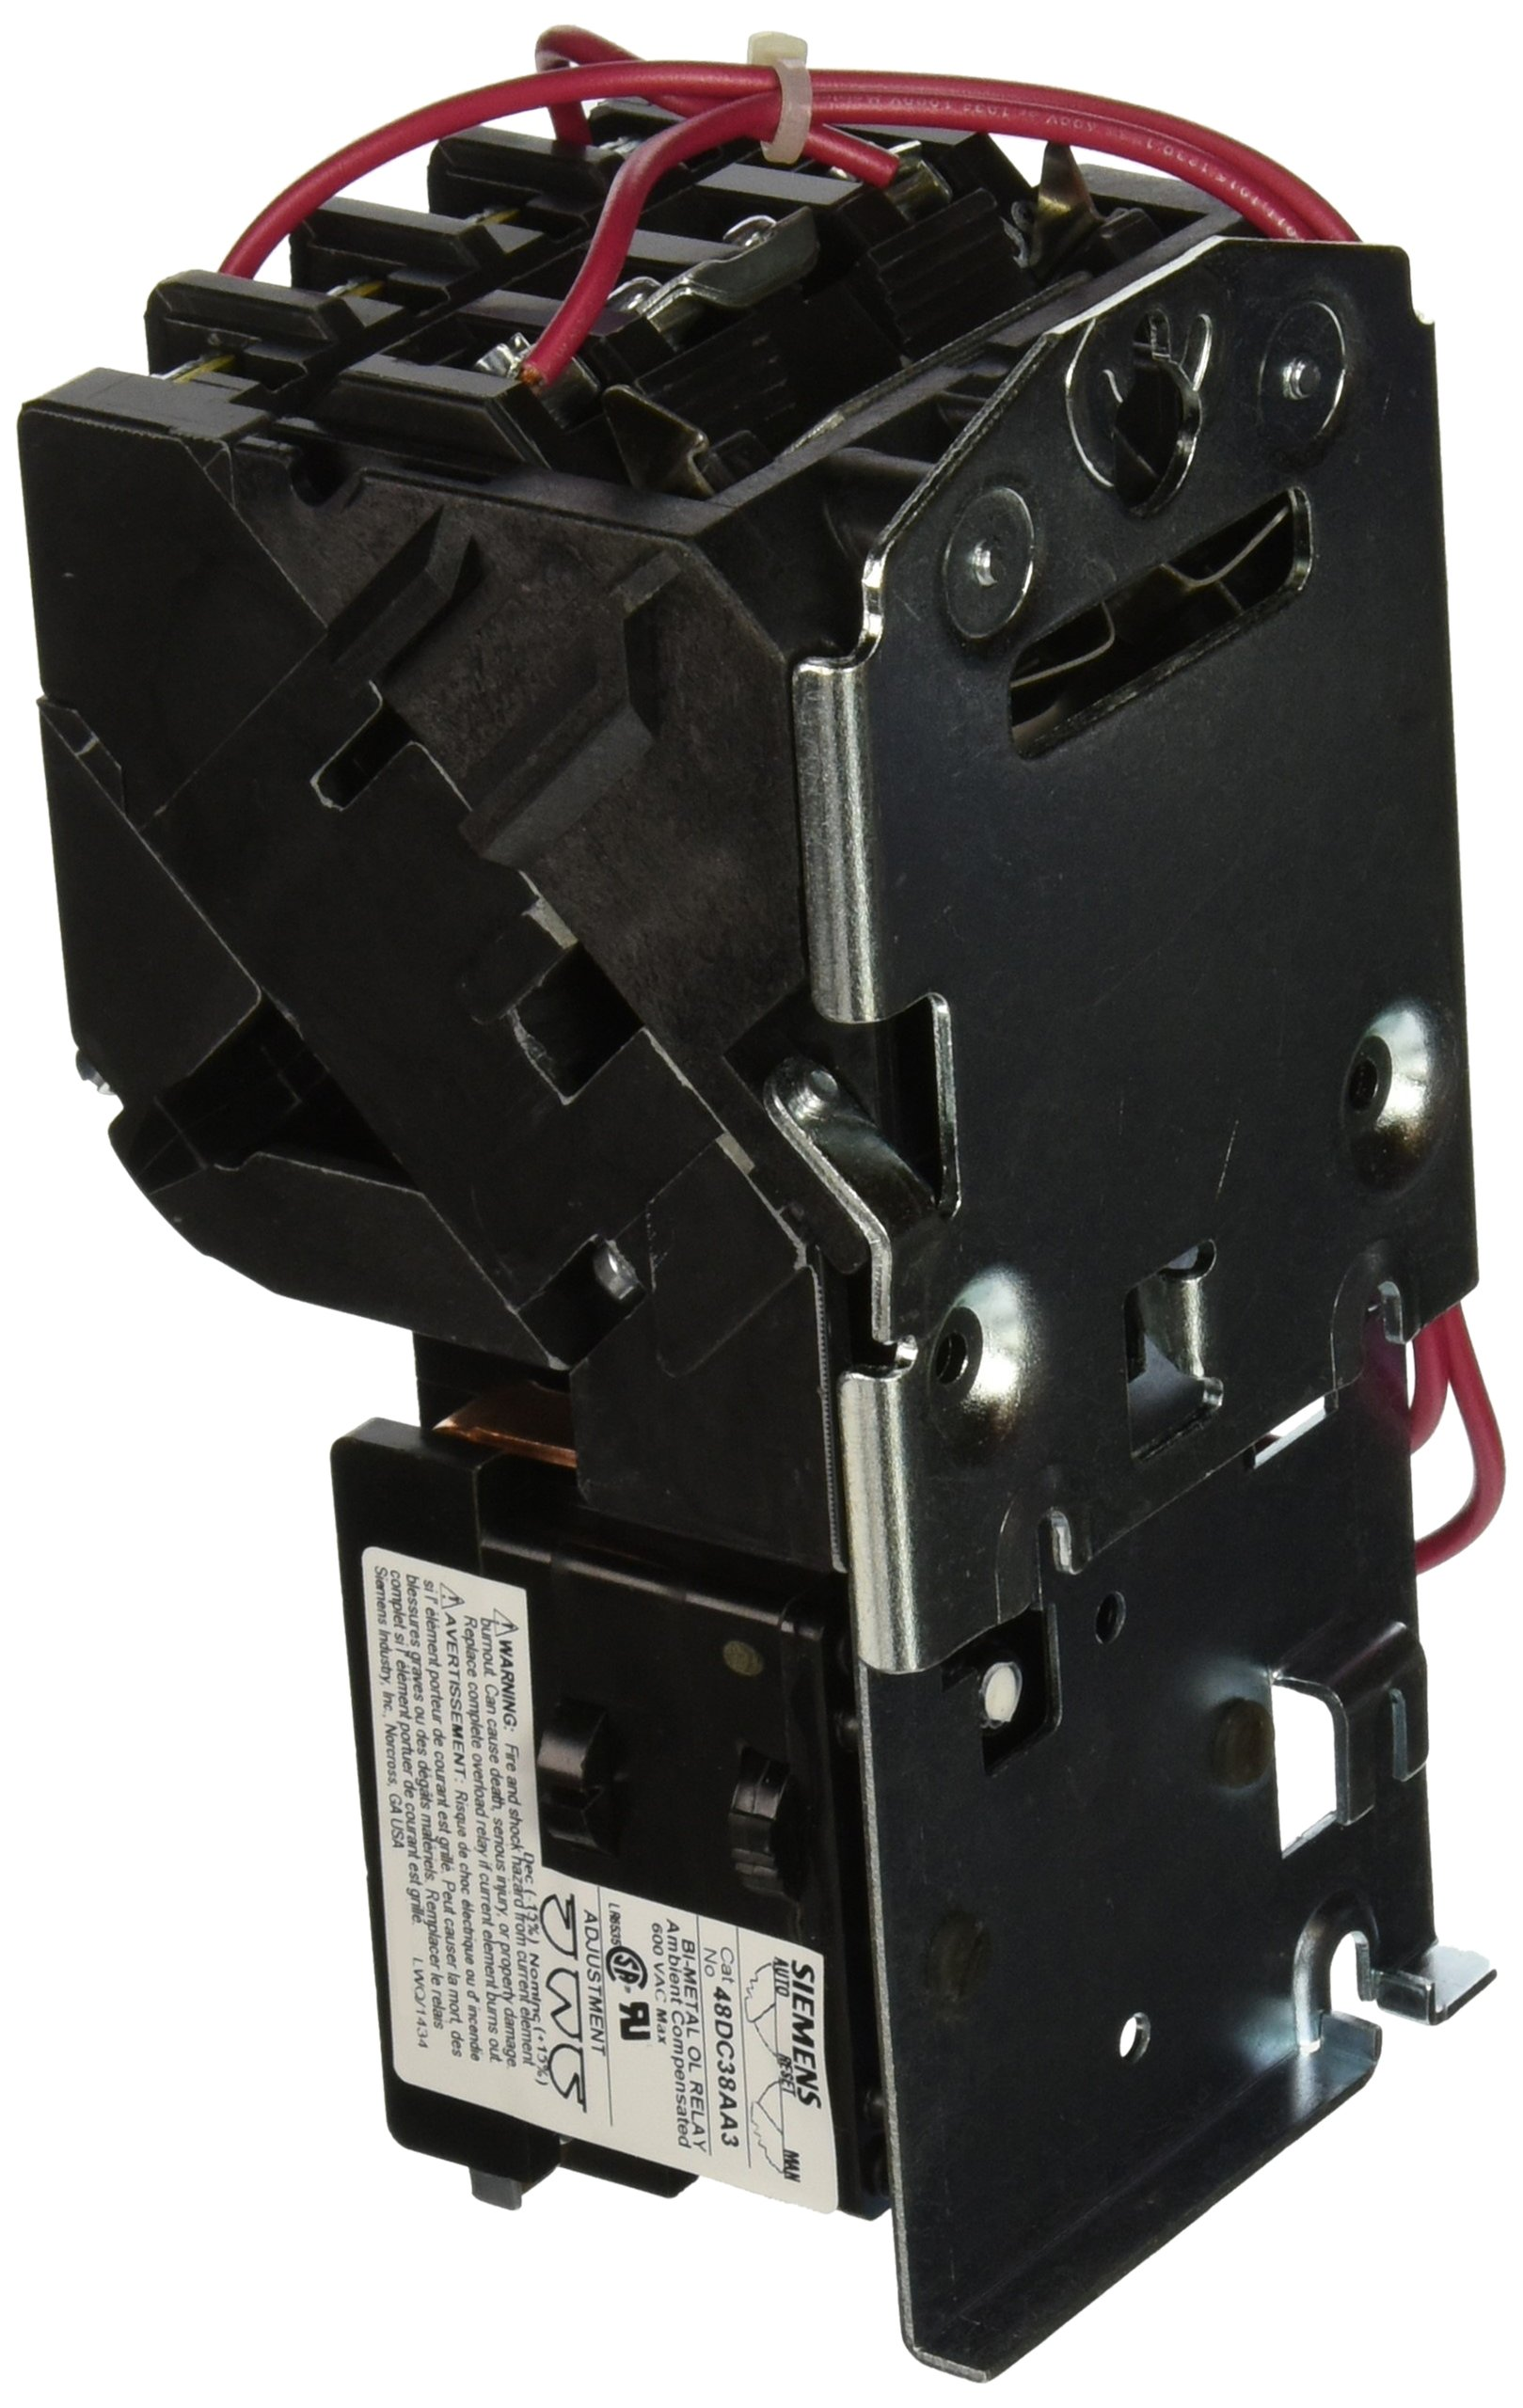 Siemens 14CP32AA81 Heavy Duty Motor Starter, Ambient Compensated Bimetal Overload, Manual/Auto Reset, Open Type, 3 Phase, 3 Pole, Standard Auxiliary Contacts, 0 NEMA Size, 18A Contactor Amp Rating, 110-120/220-240 at 60Hz Coil Voltage